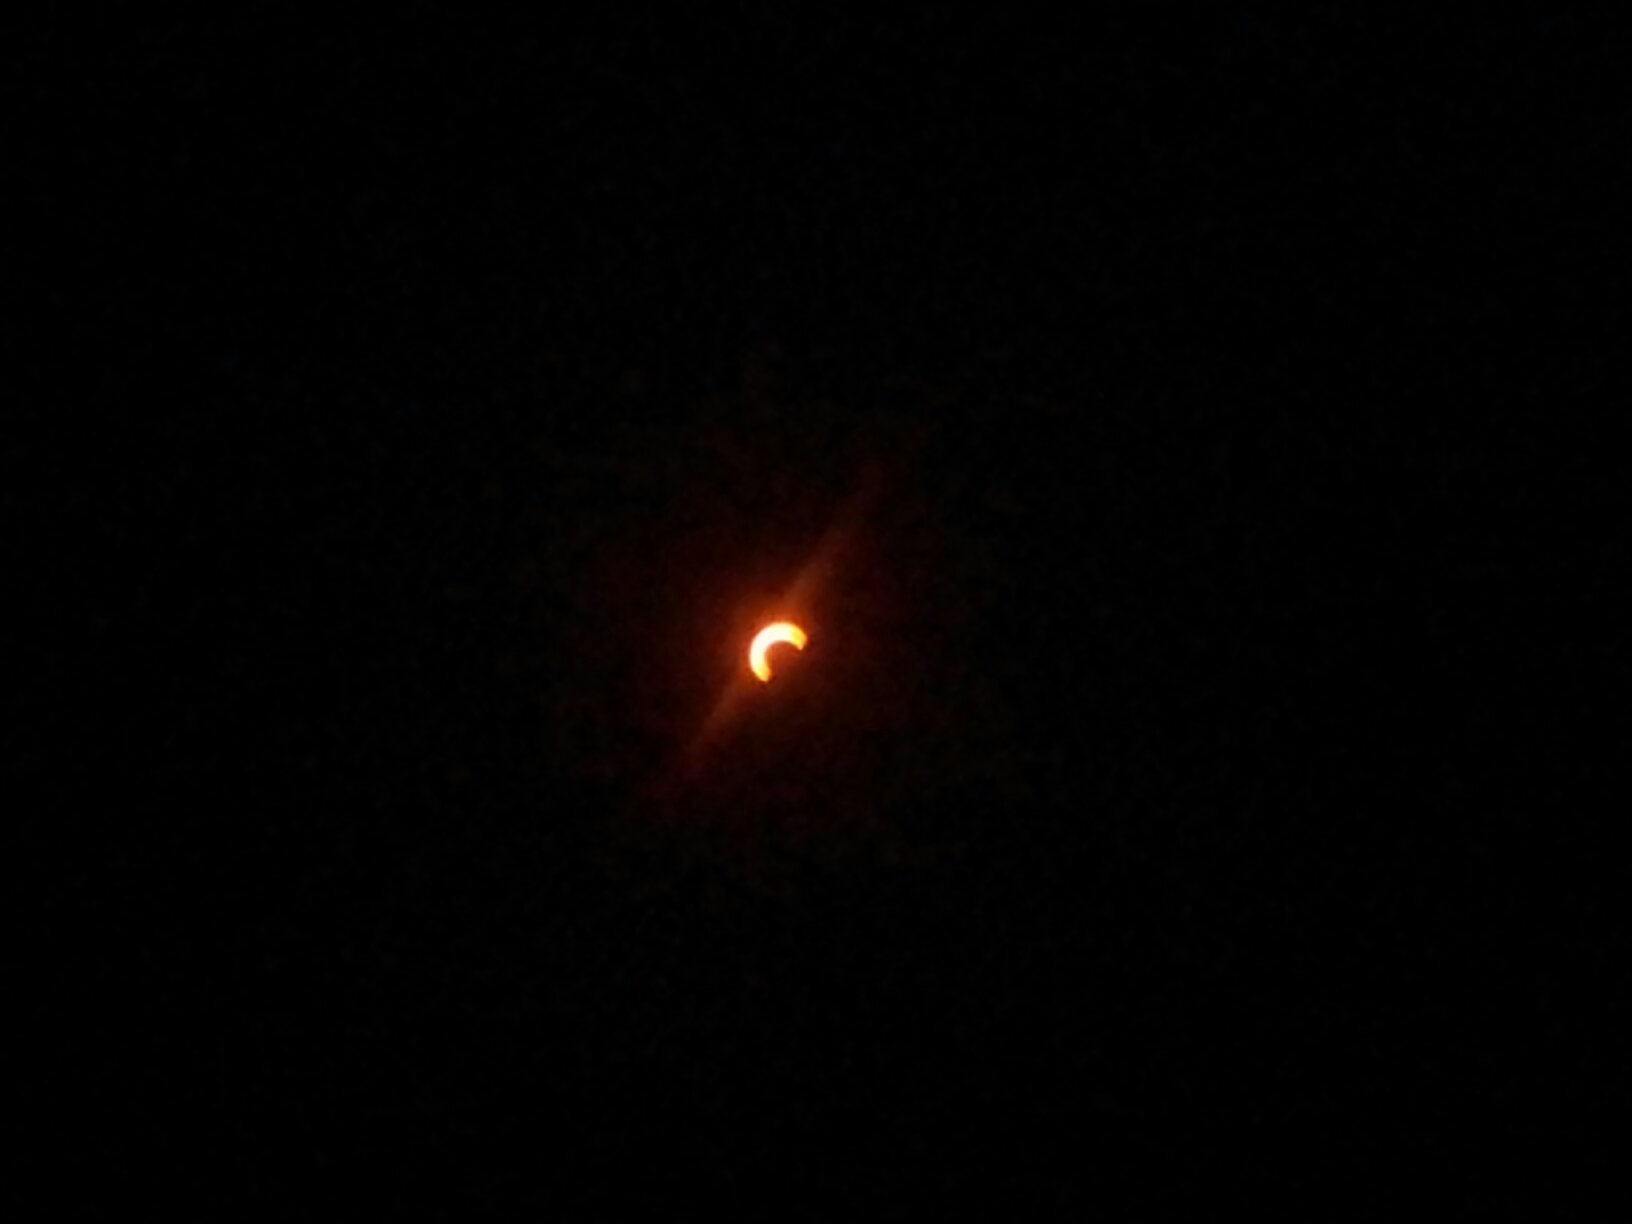 Picture of eclipse-uploadfromtaptalk1337564759626.jpg